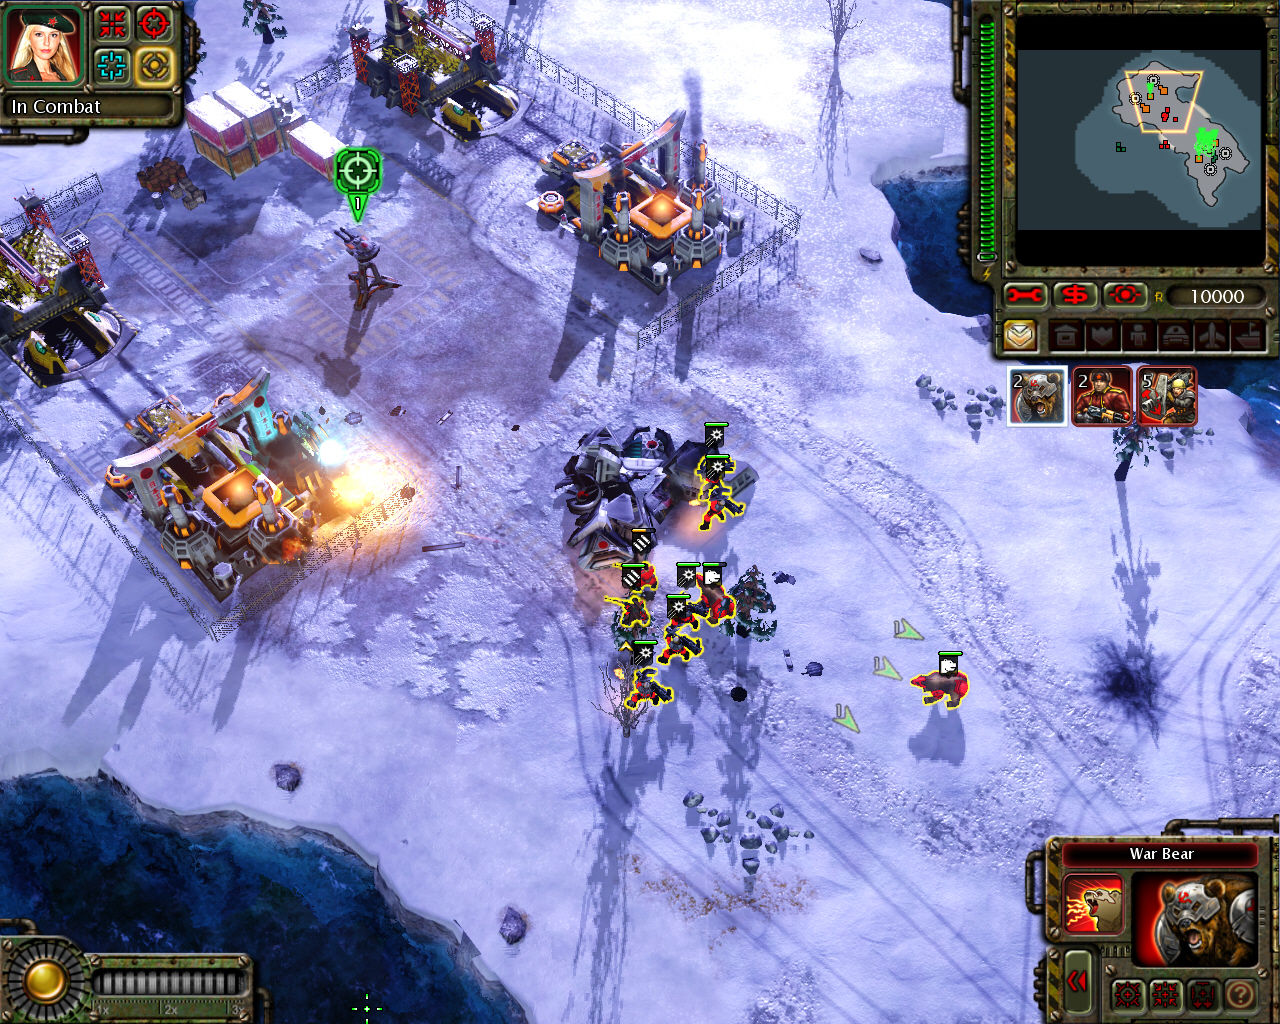 Command & Conquer: Red Alert 3 Windows Soldiers attacking small enemy base.